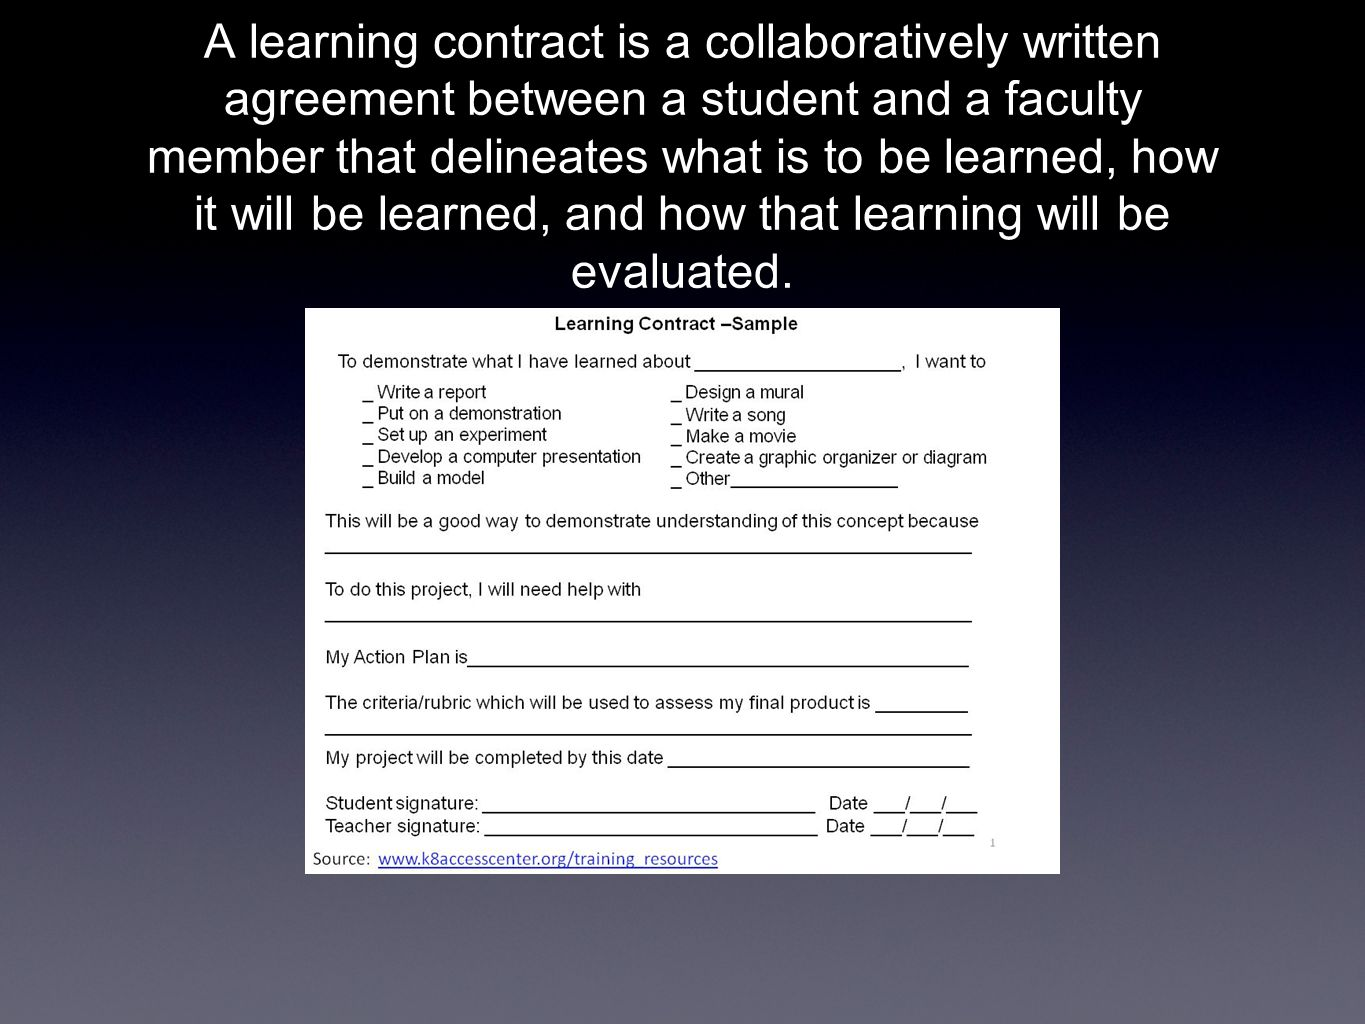 A learning contract is a collaboratively written agreement between a student and a faculty member that delineates what is to be learned, how it will b